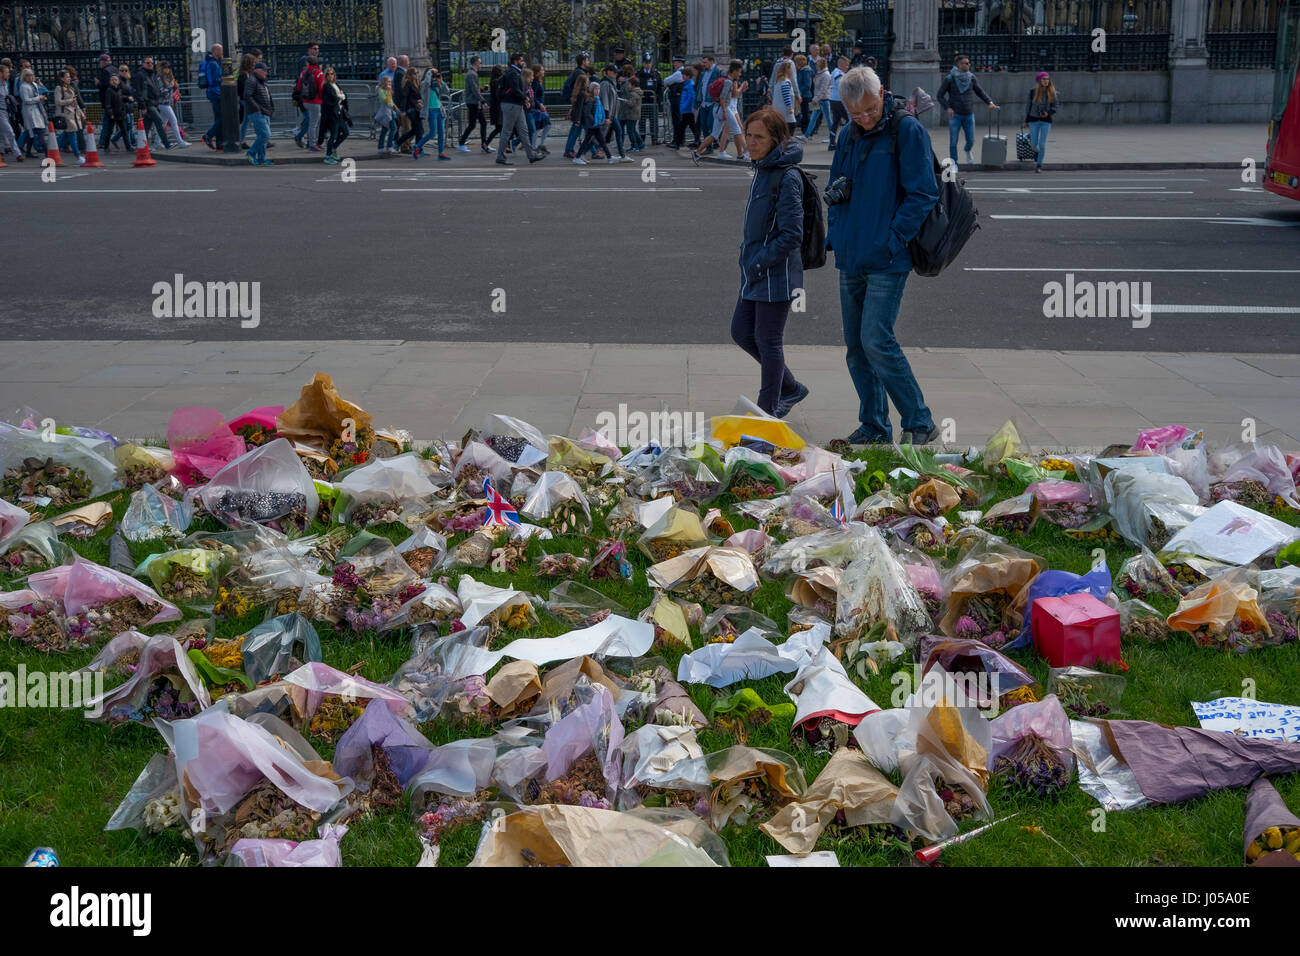 Parliament Square, London, UK. 10th April 2017. The full force funeral of PC Keith Palmer, killed in the Westminster - Stock Image